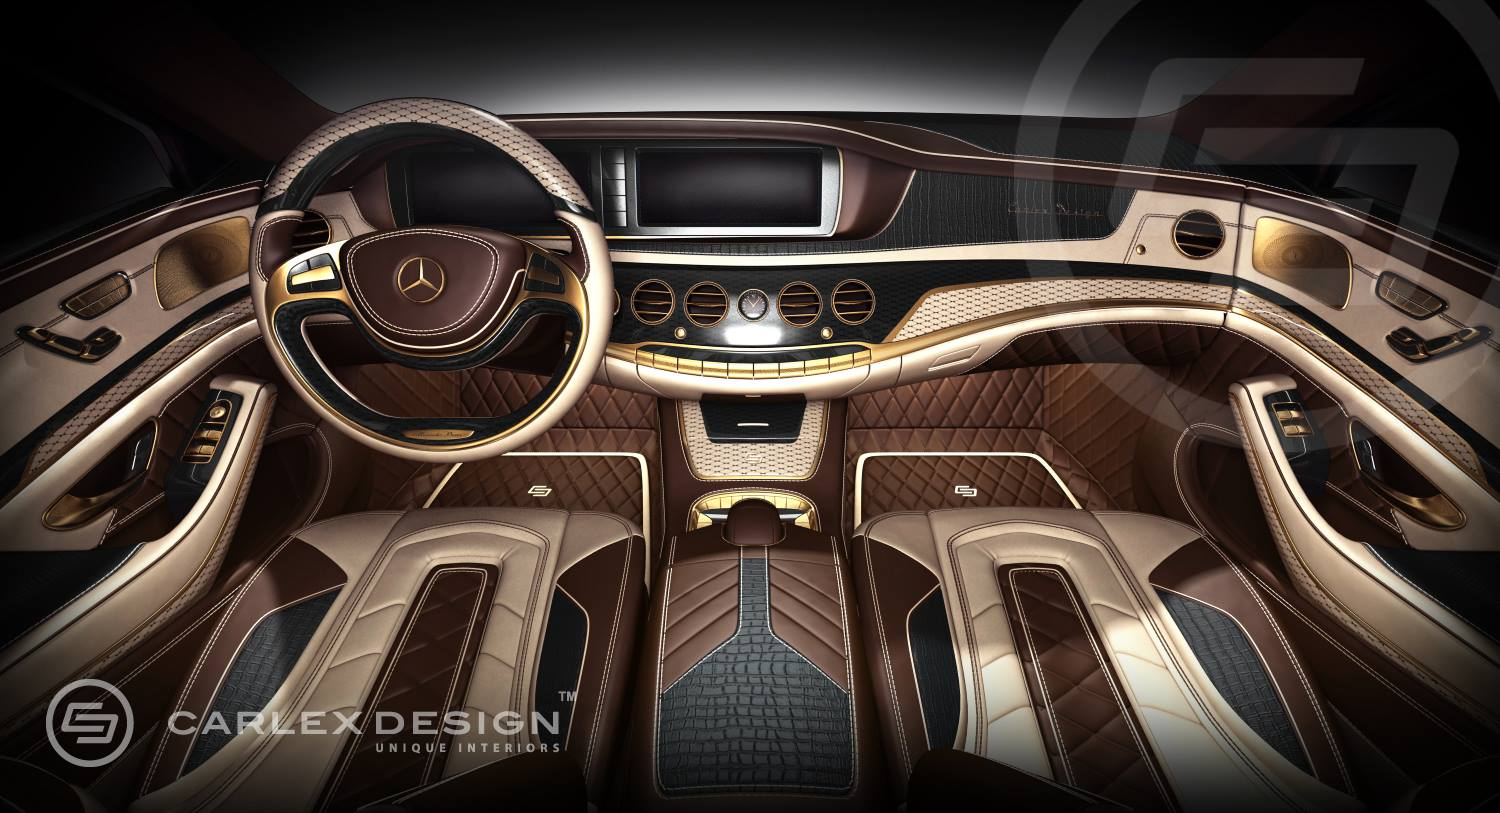 Gold S Carlex Mercedes S Class Interior 24k Gold And Crocodile Leather